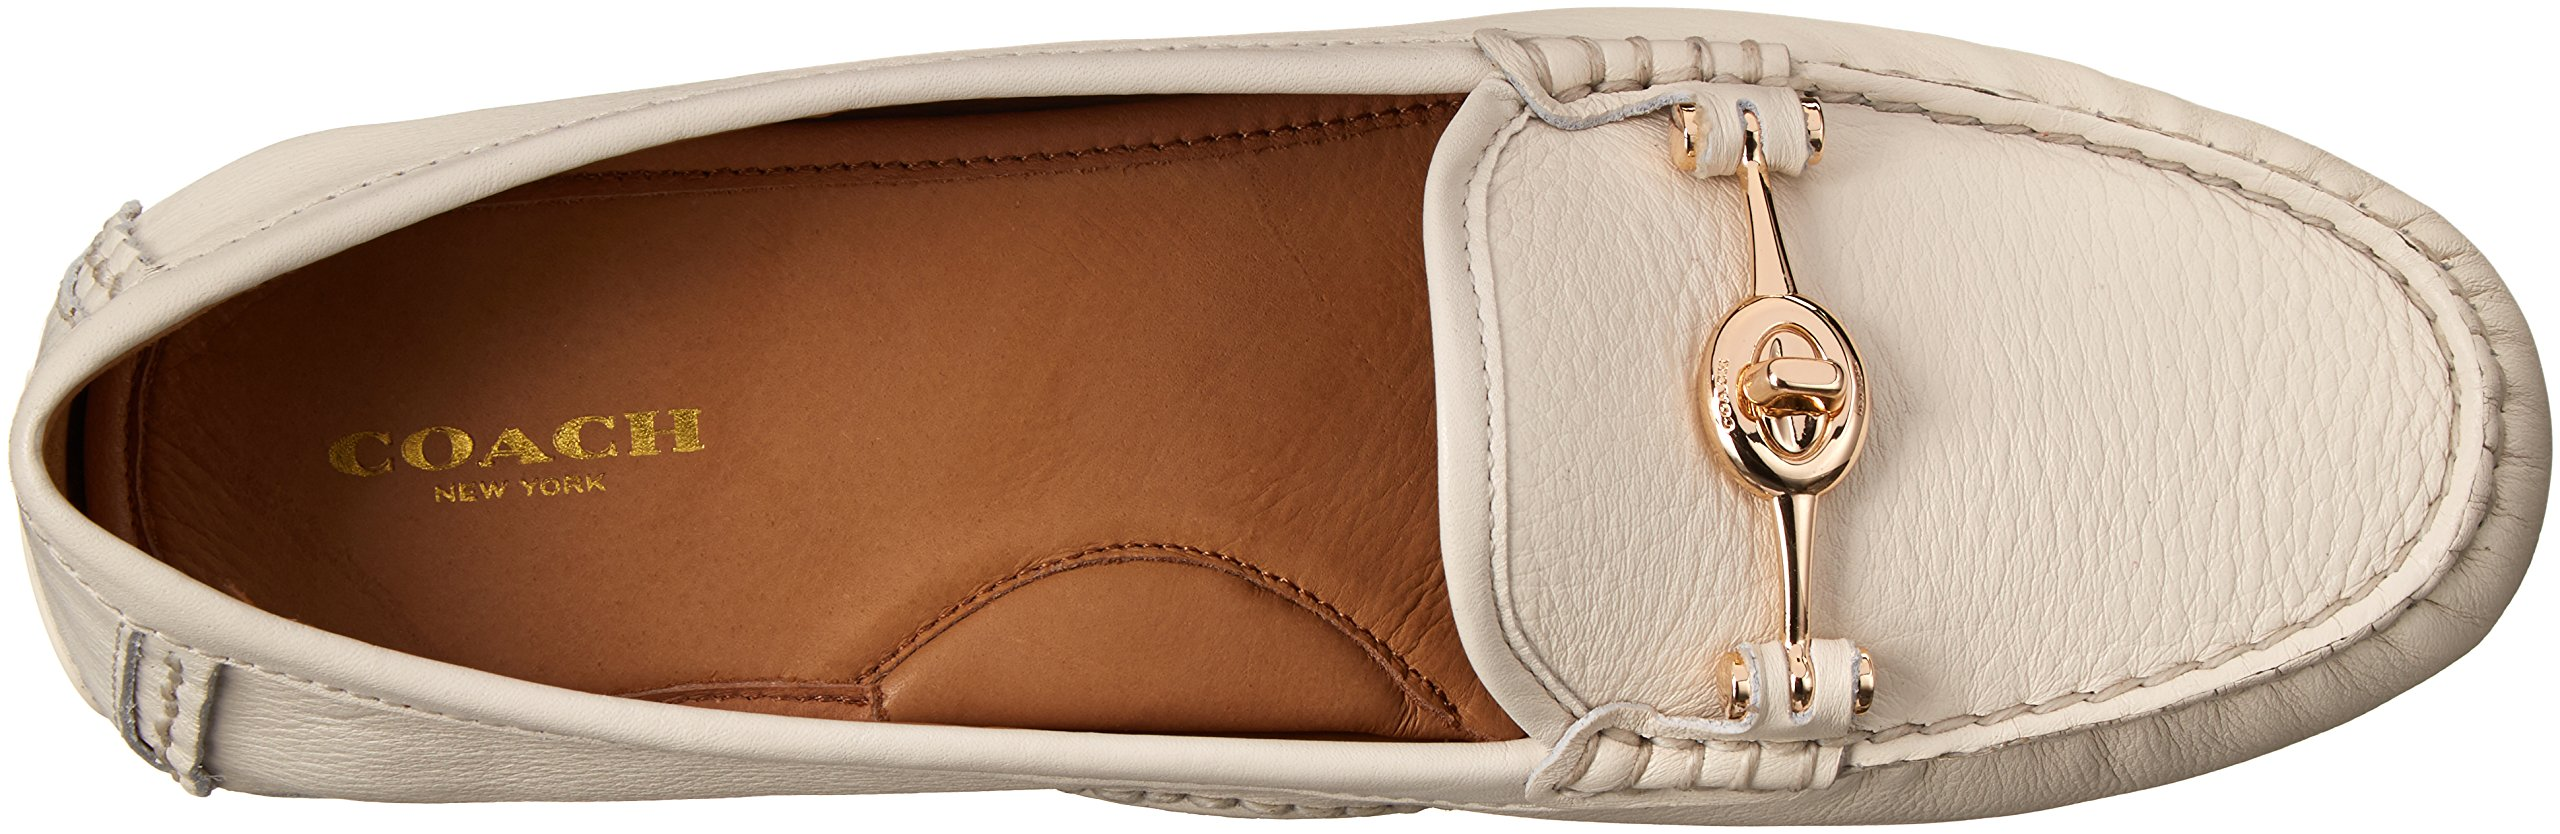 COACH Women's Arlene Chalk Pebble Grain Leather Flat by Coach (Image #8)